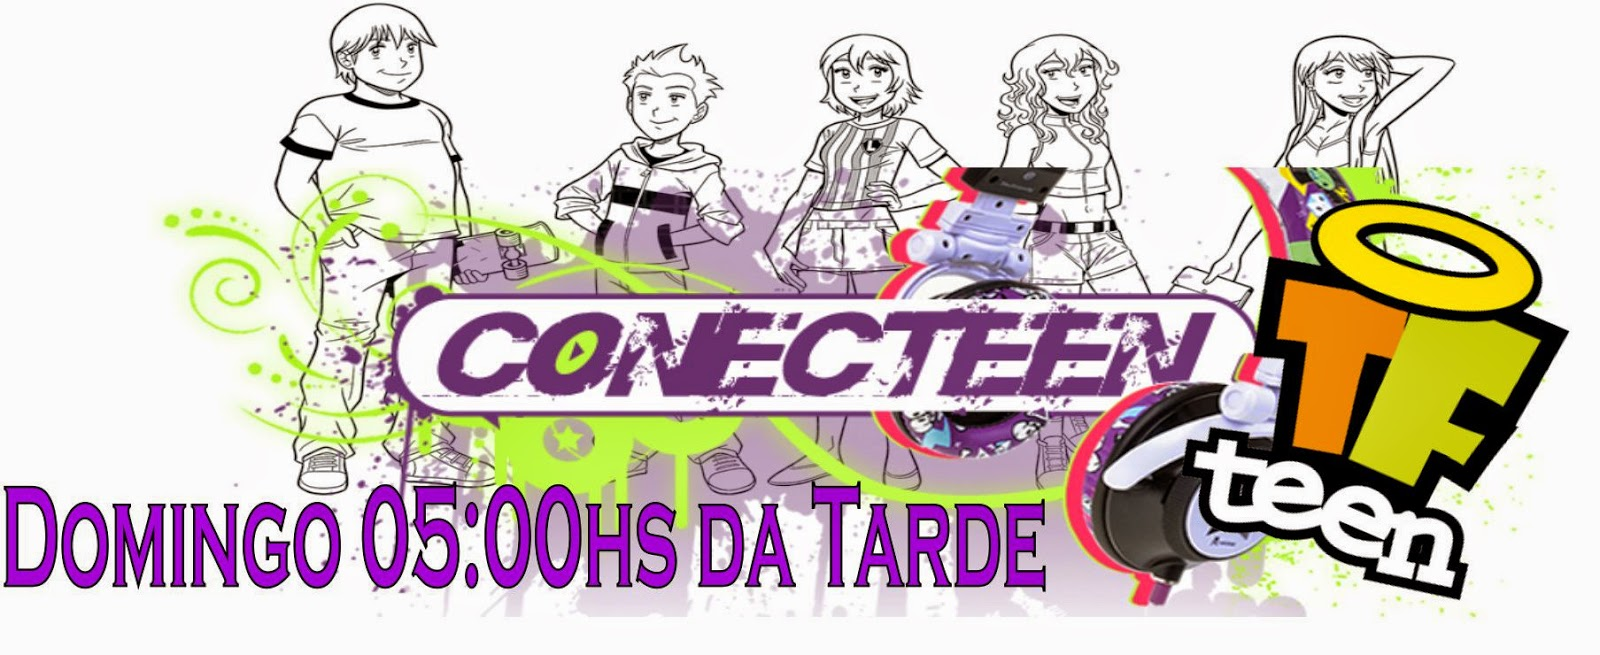 Logos Dos Encontros Do TF TEEN  N  O Oficial